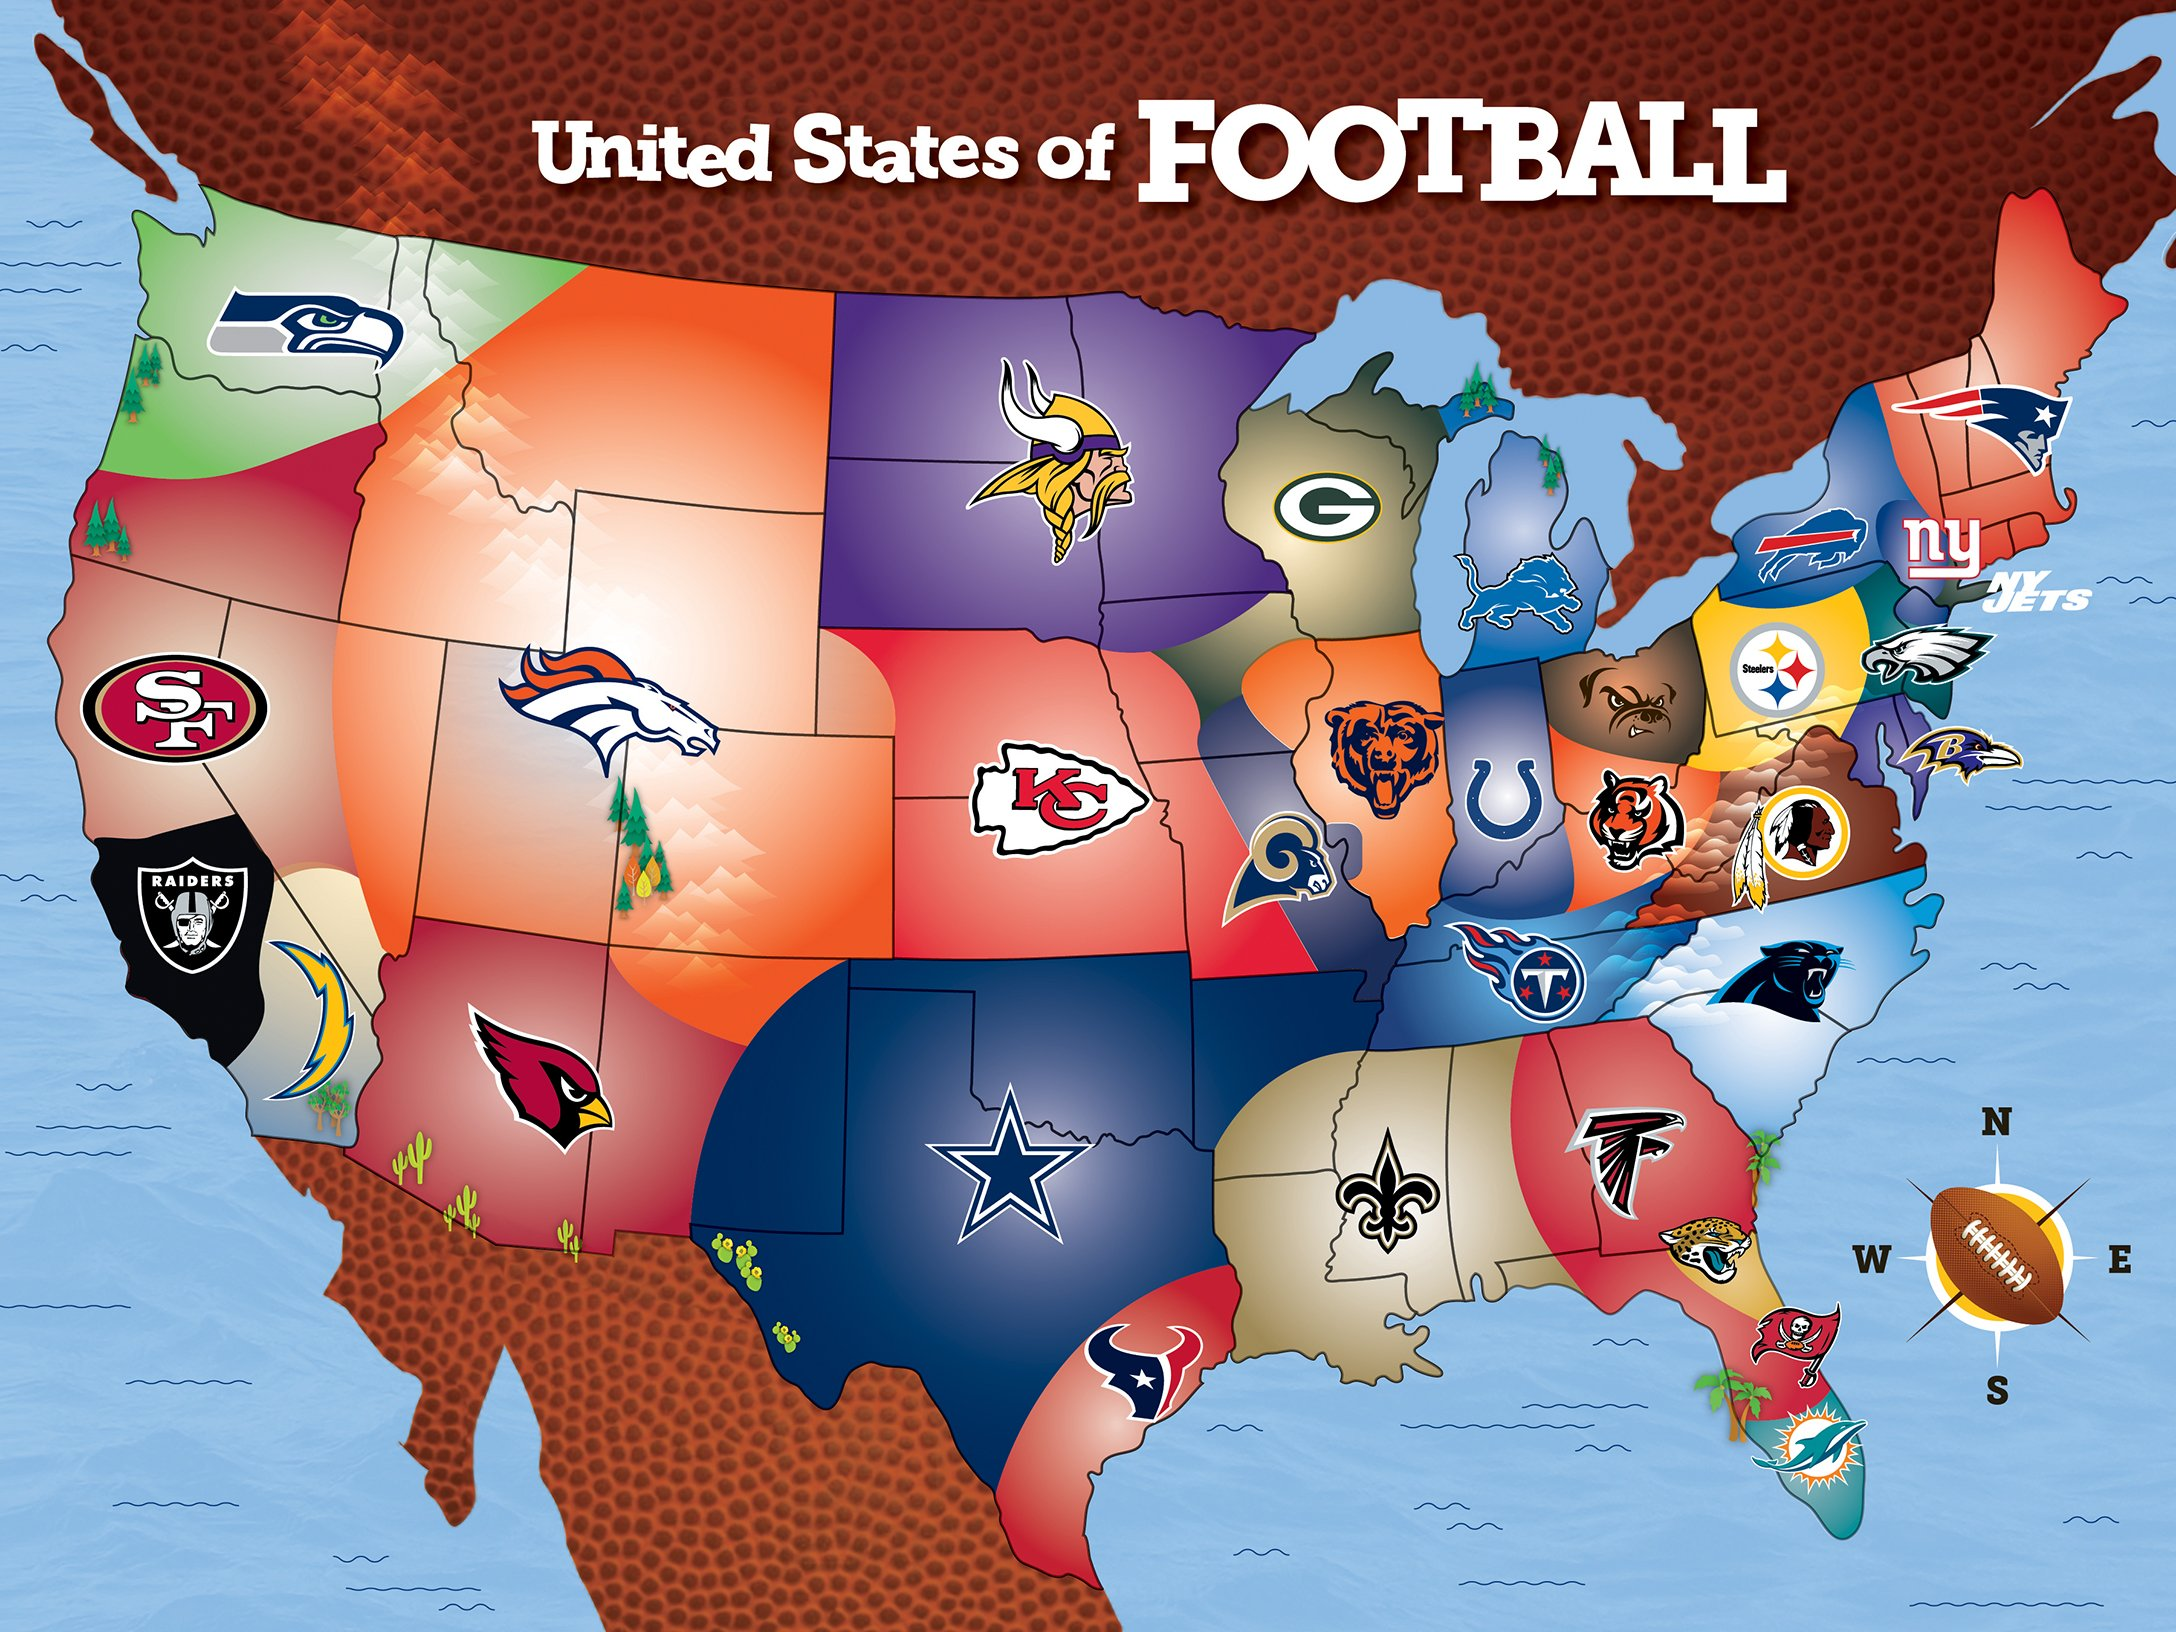 NFL Jigsaw Puzzles - What is Your Favorite NFL Team